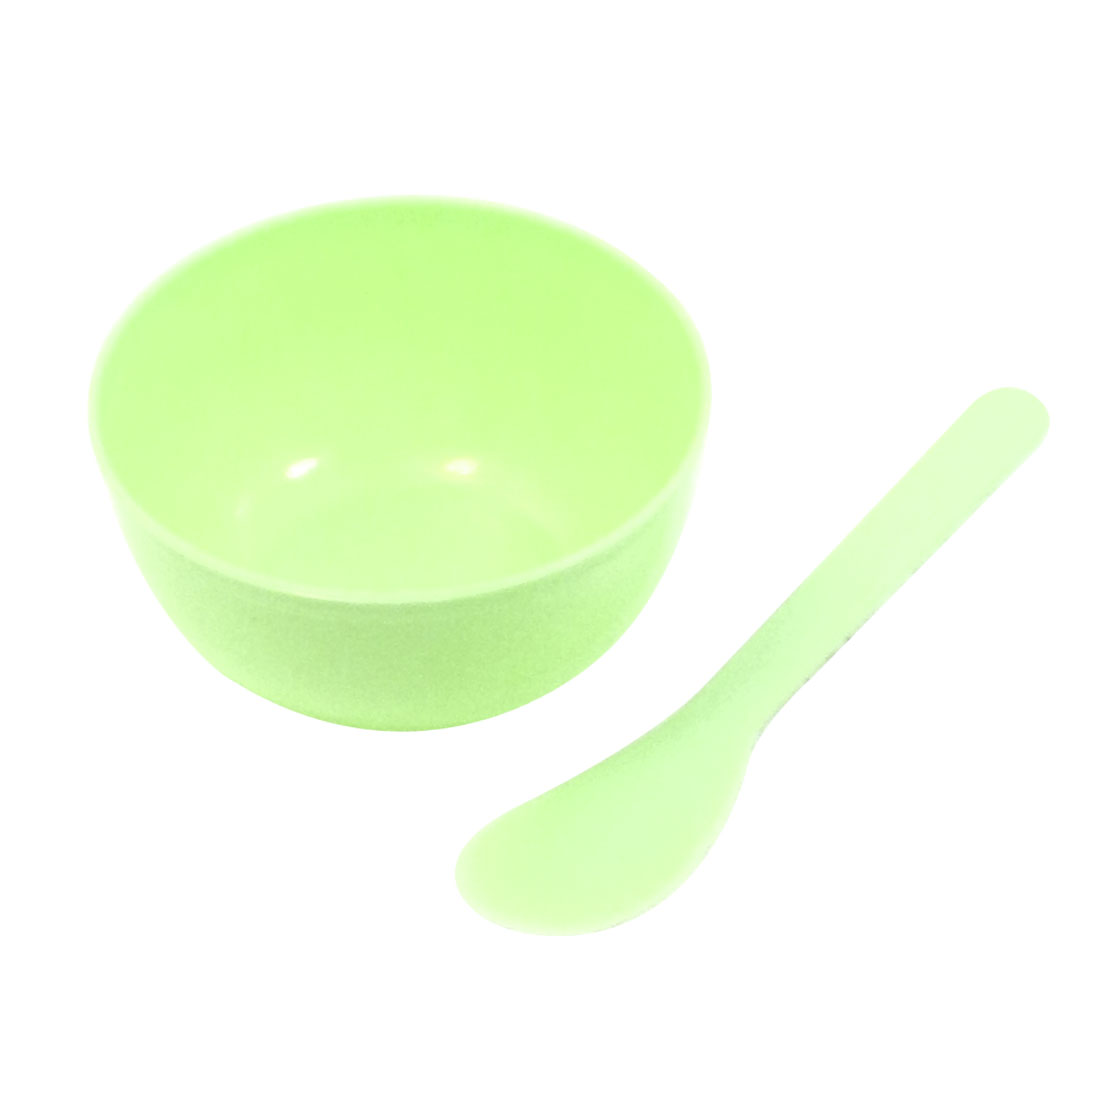 Green 2 In 1 Daily Beauty DIY Facial Mask Bowl Spoons Stick Tools Set